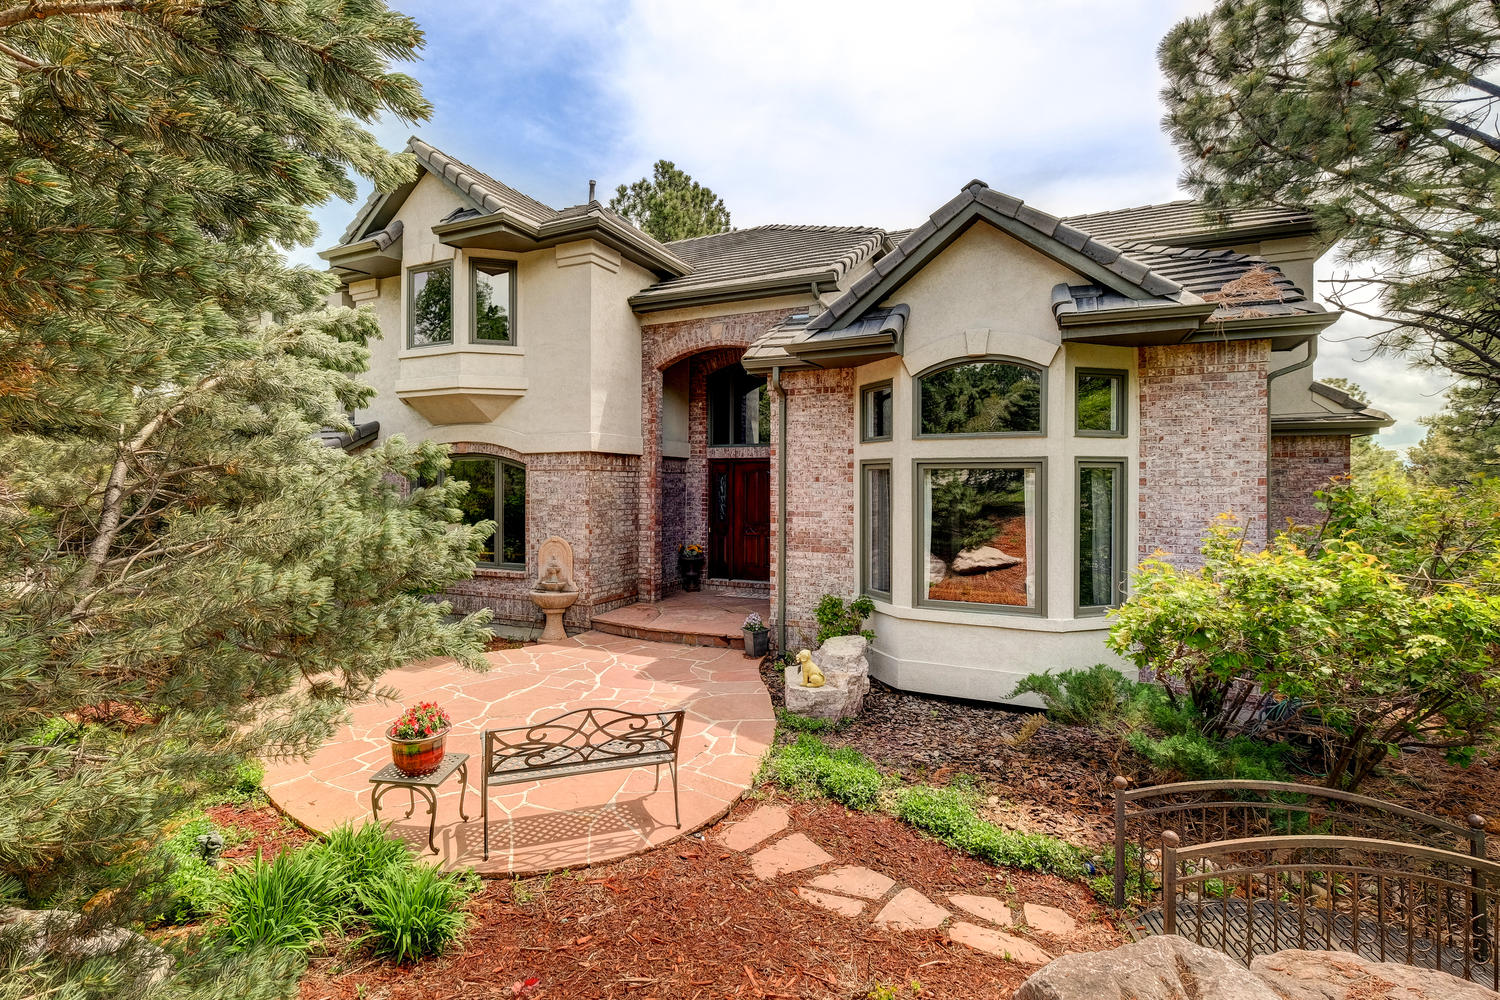 Single Family Home for Sale at 878 Wolverine Ct Castle Pines Village, Castle Rock, Colorado, 80108 United States